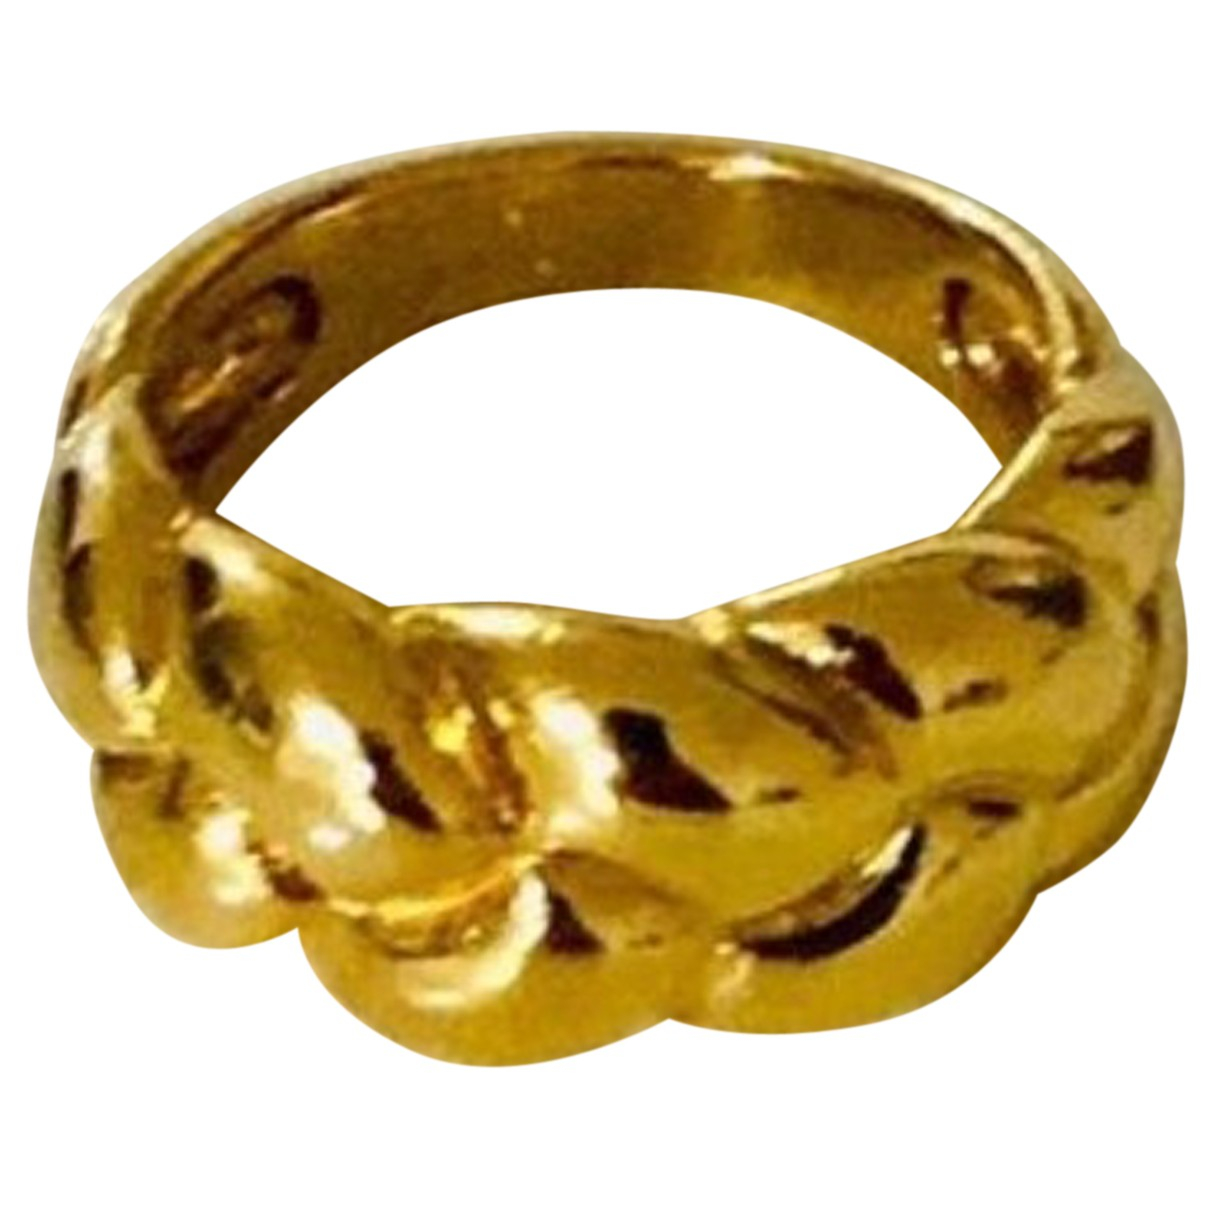 Van Cleef & Arpels N Yellow Yellow gold ring for Women 50